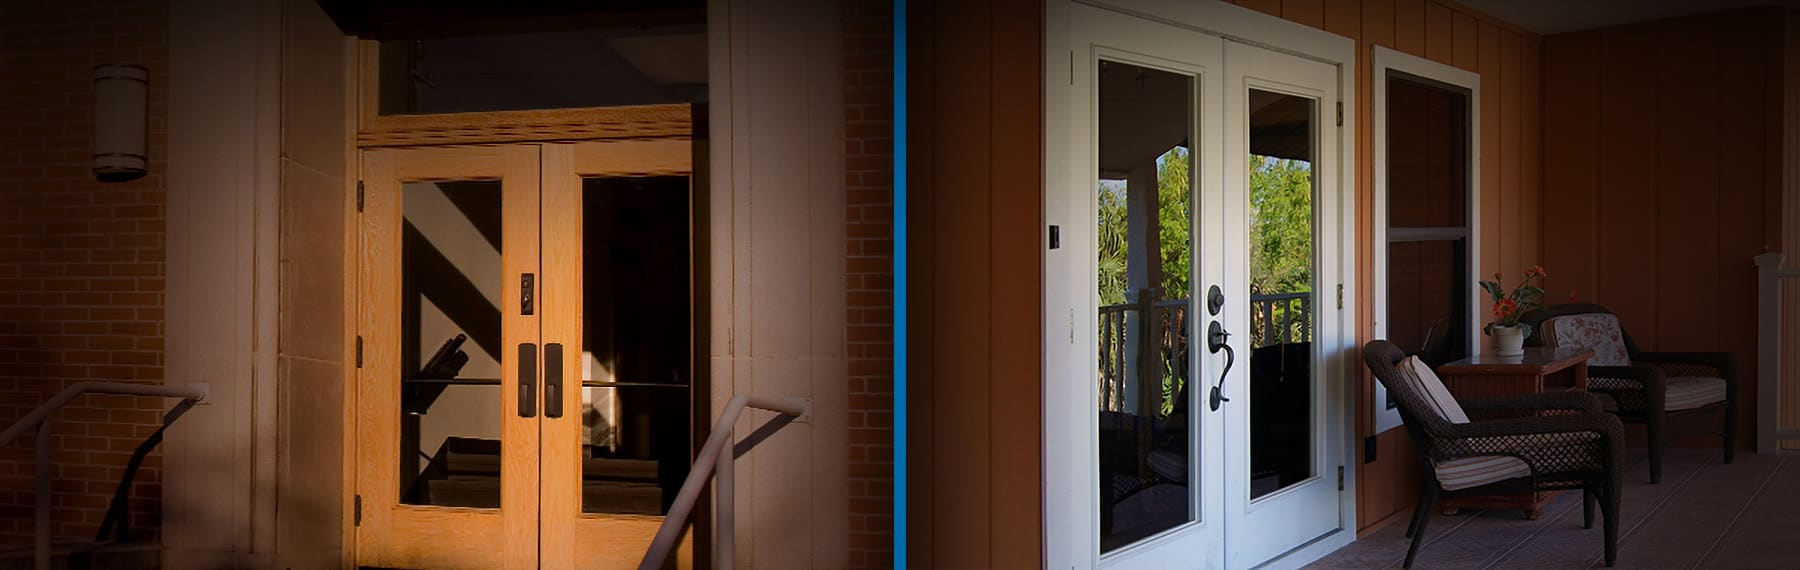 Protect Entry doors from thieves and burglars with Erie Products ...